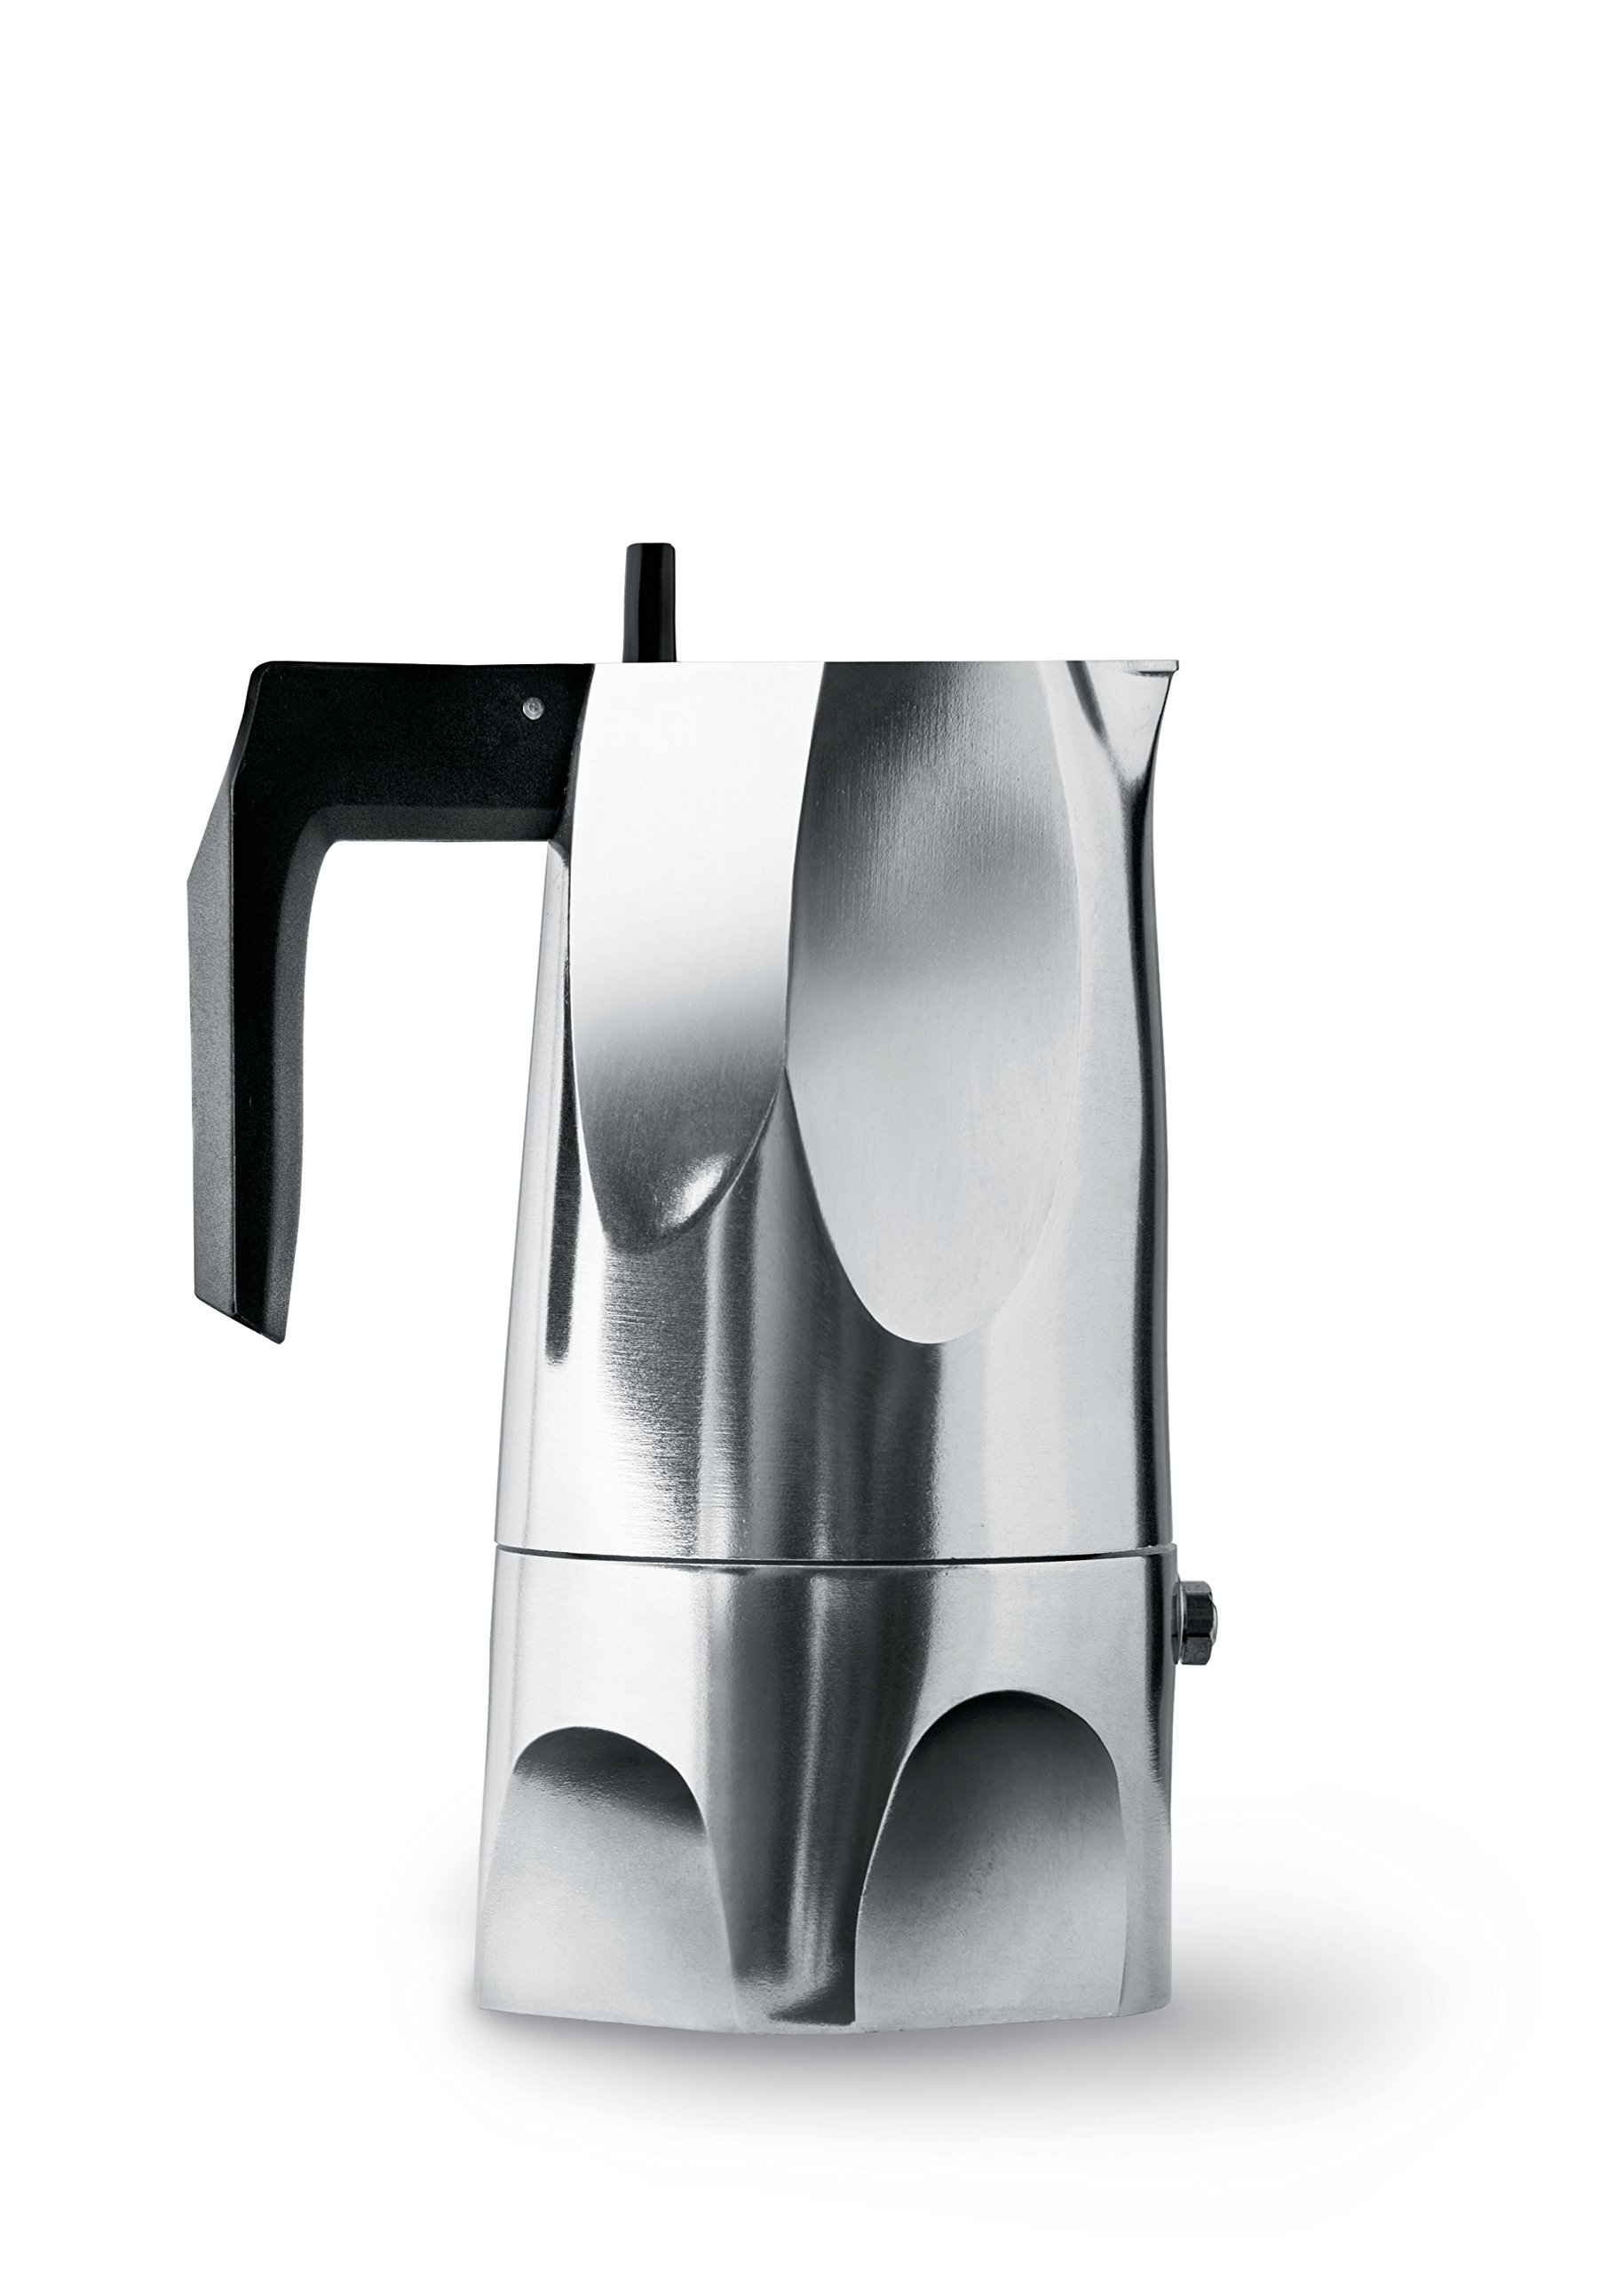 Alessi MT18/3''Ossidiana'' Stove Top Espresso 3 Cup Coffee Maker in Aluminium Casting Handle And Knob in Thermoplastic Resin, Black